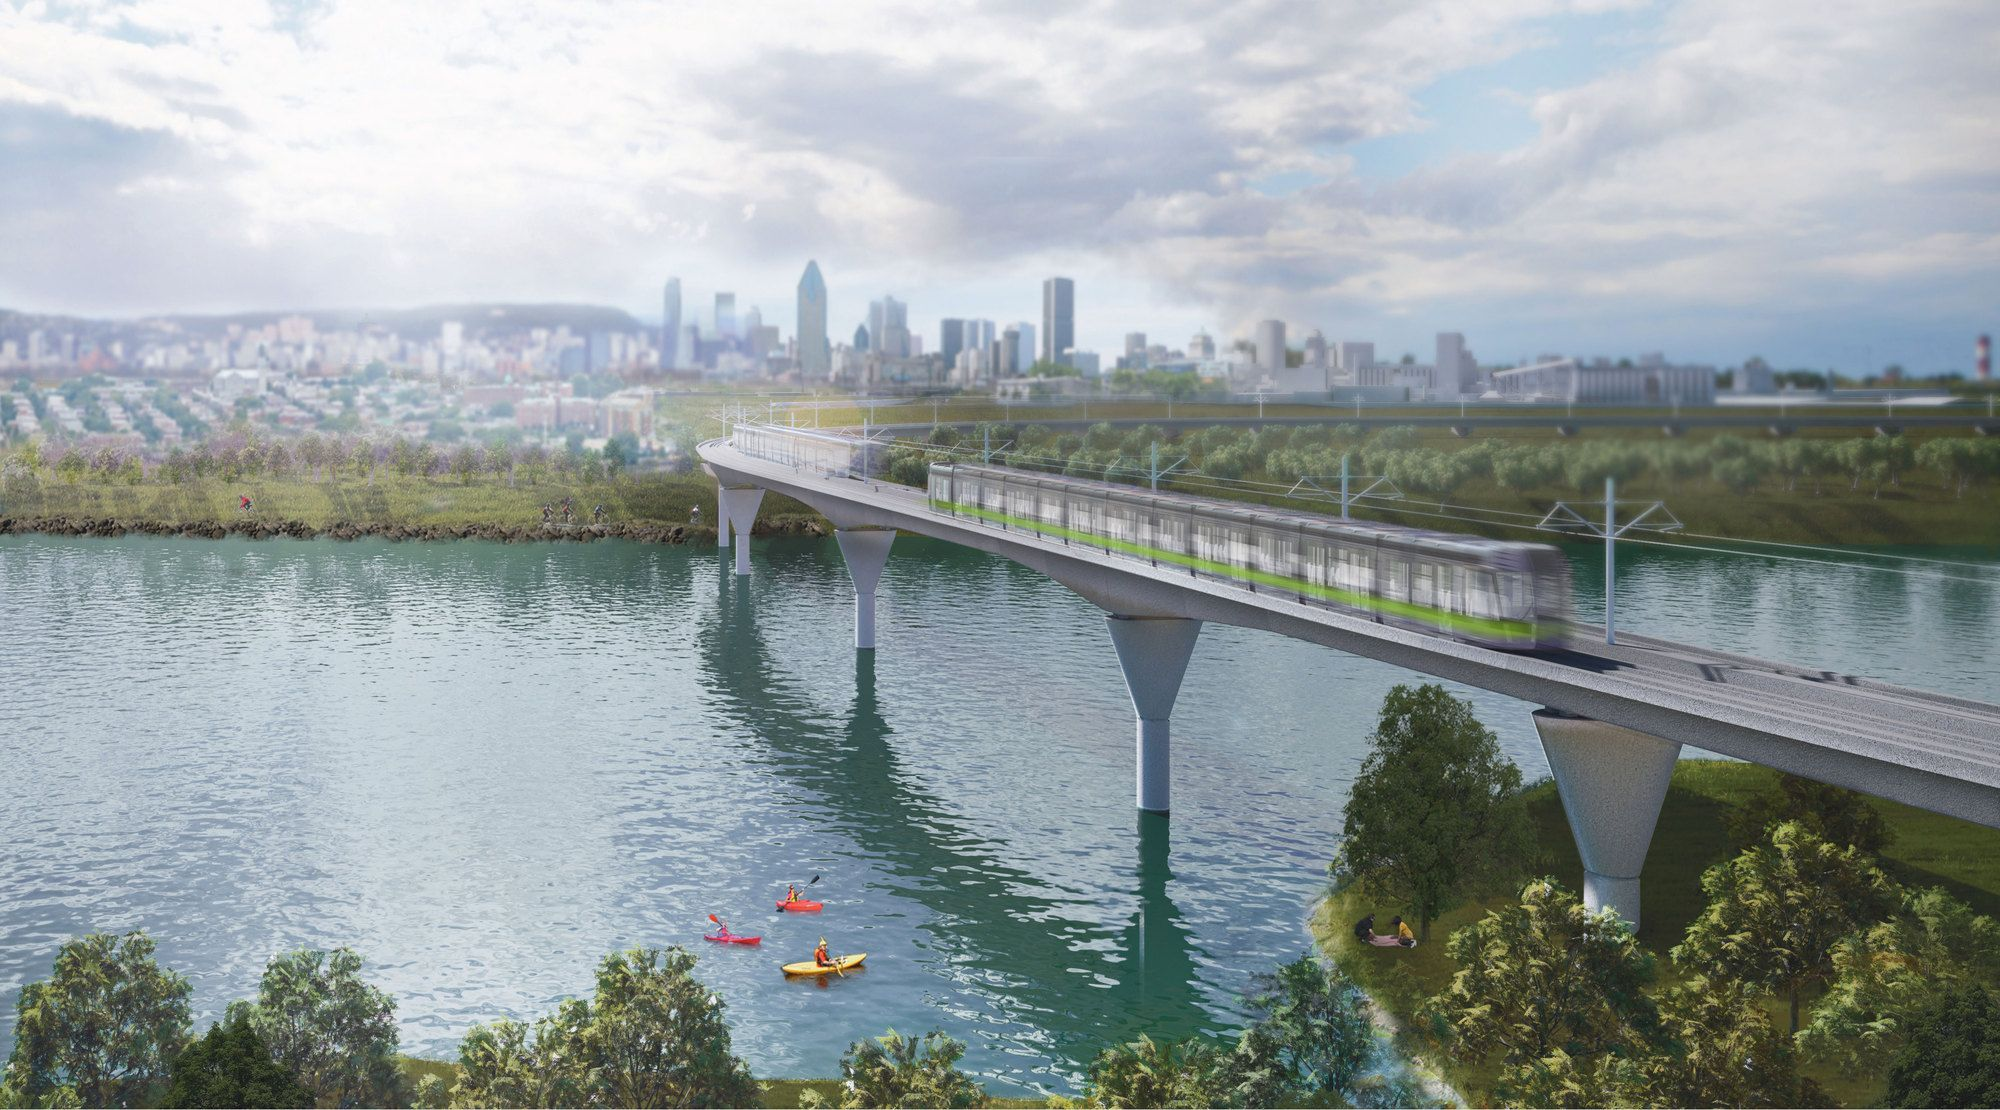 Lemay, Perkins+Will, and Bisson Fortin to Design Montreal ...